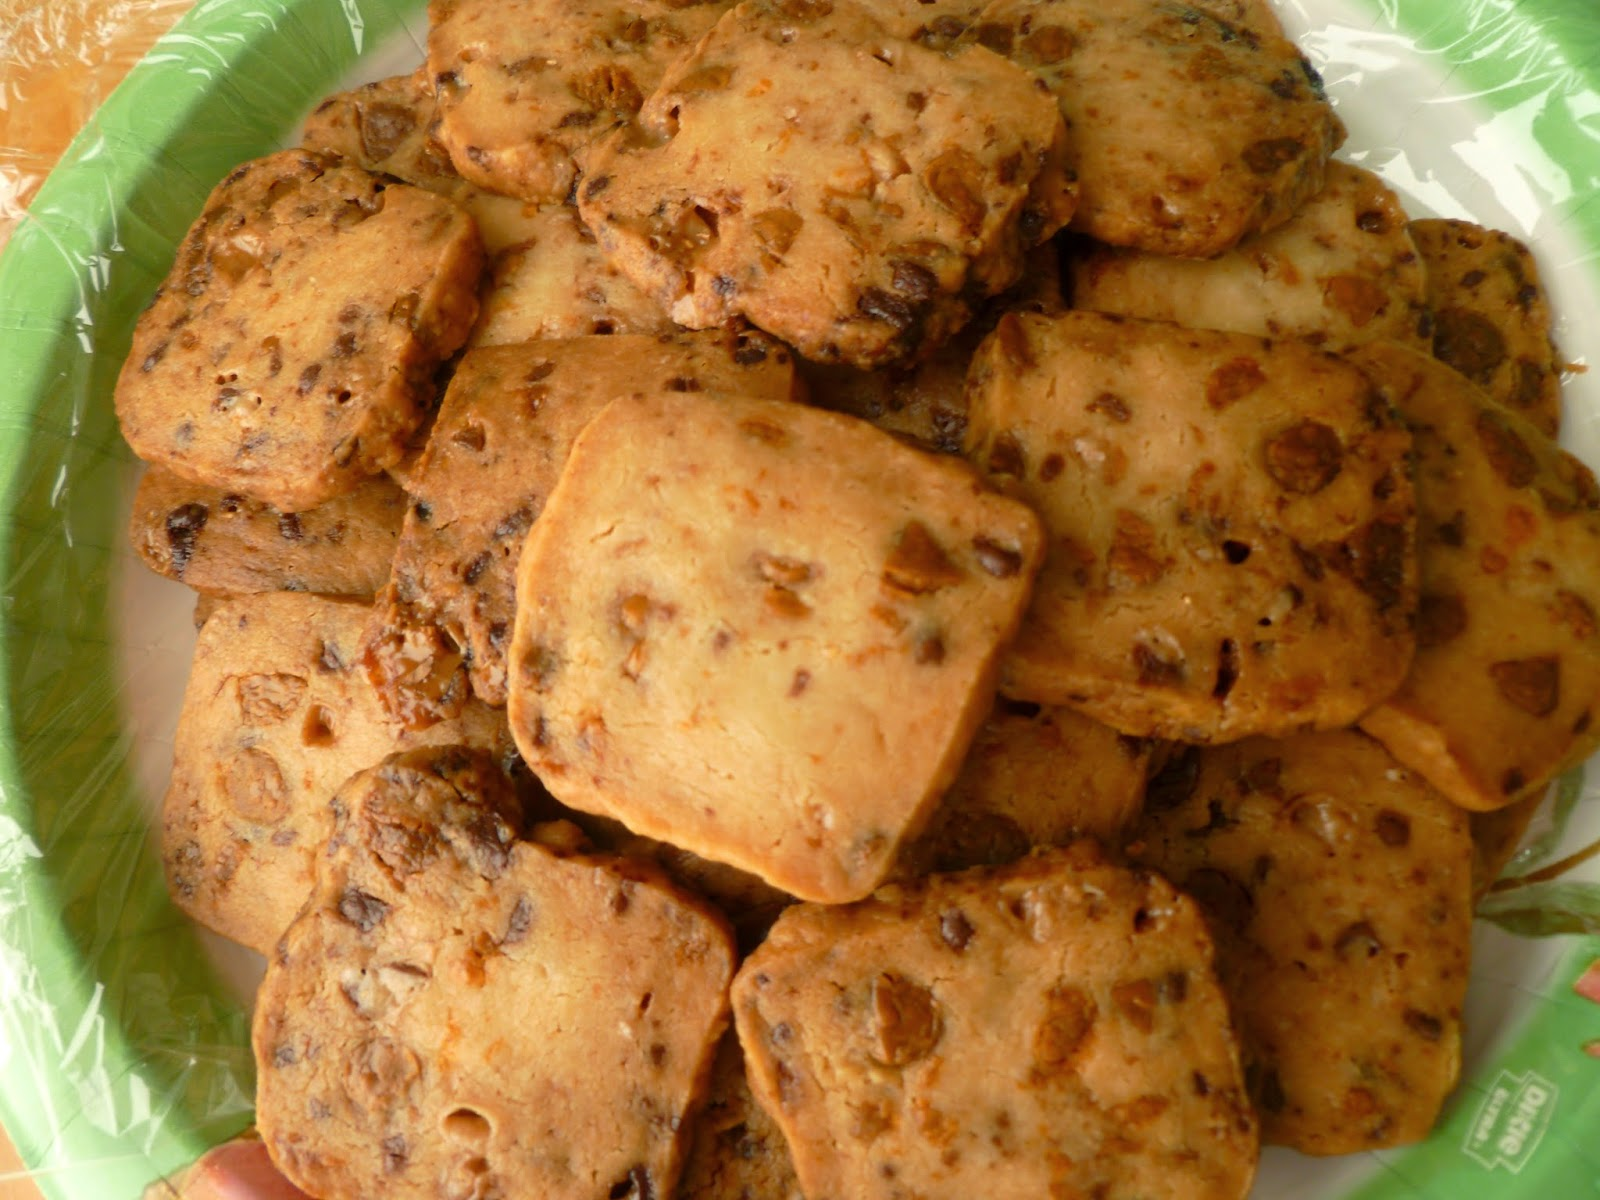 Butterscotch Toffee Shortbread Cookies